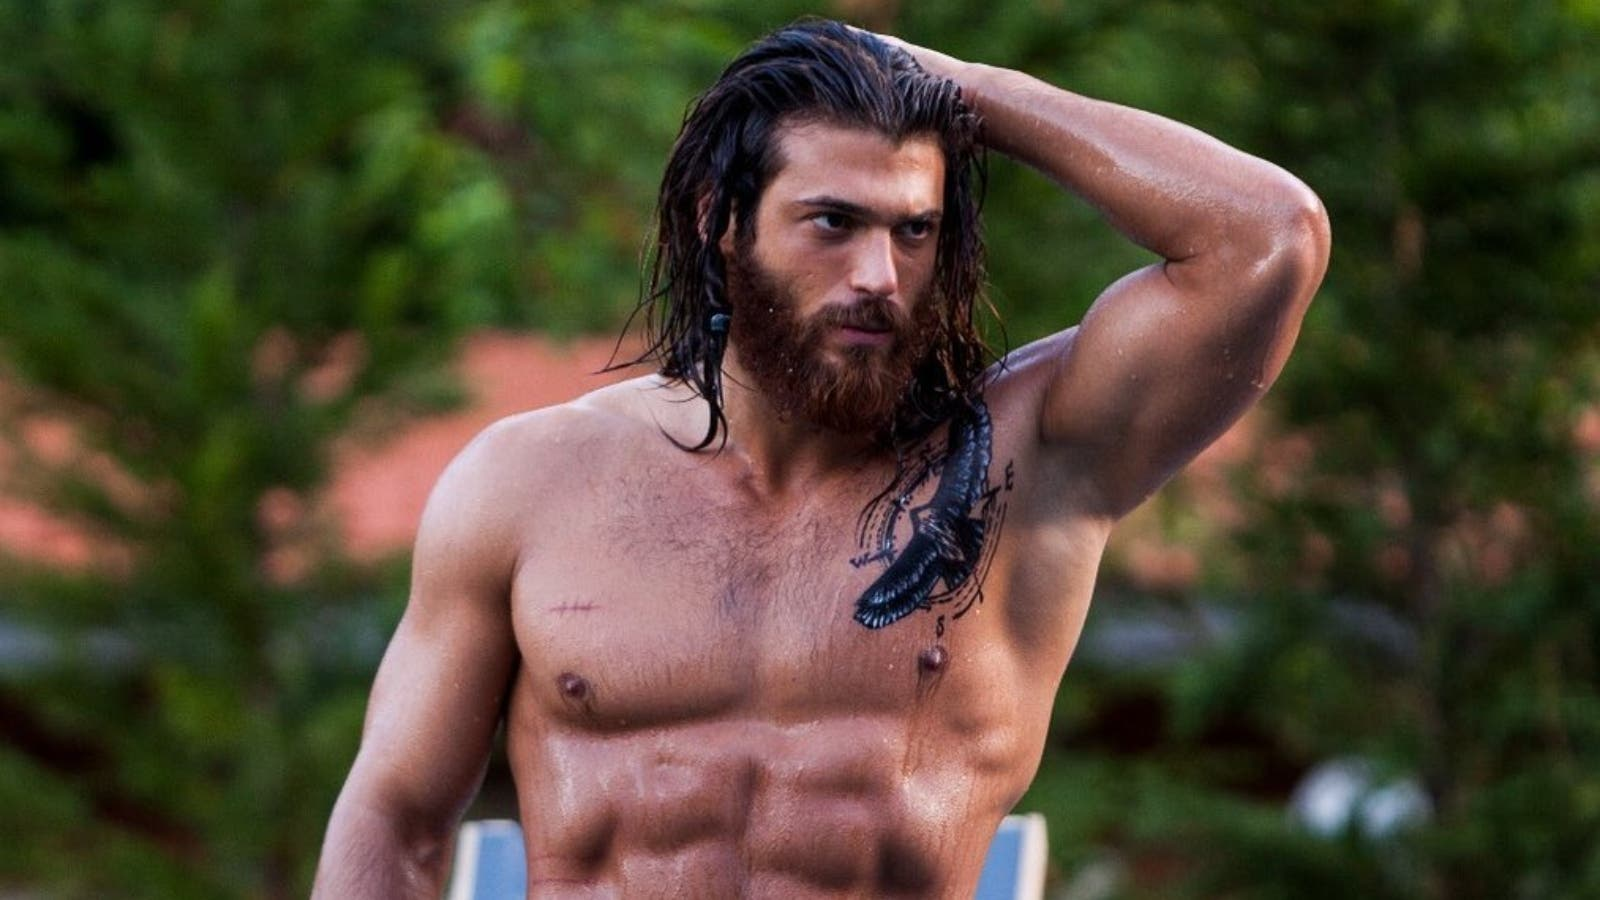 Is That You? Can Yaman Is UNRECOGNIZABLE After He Shaved His Beard and Cut  His Locks.. Check Him Out! | Al Bawaba